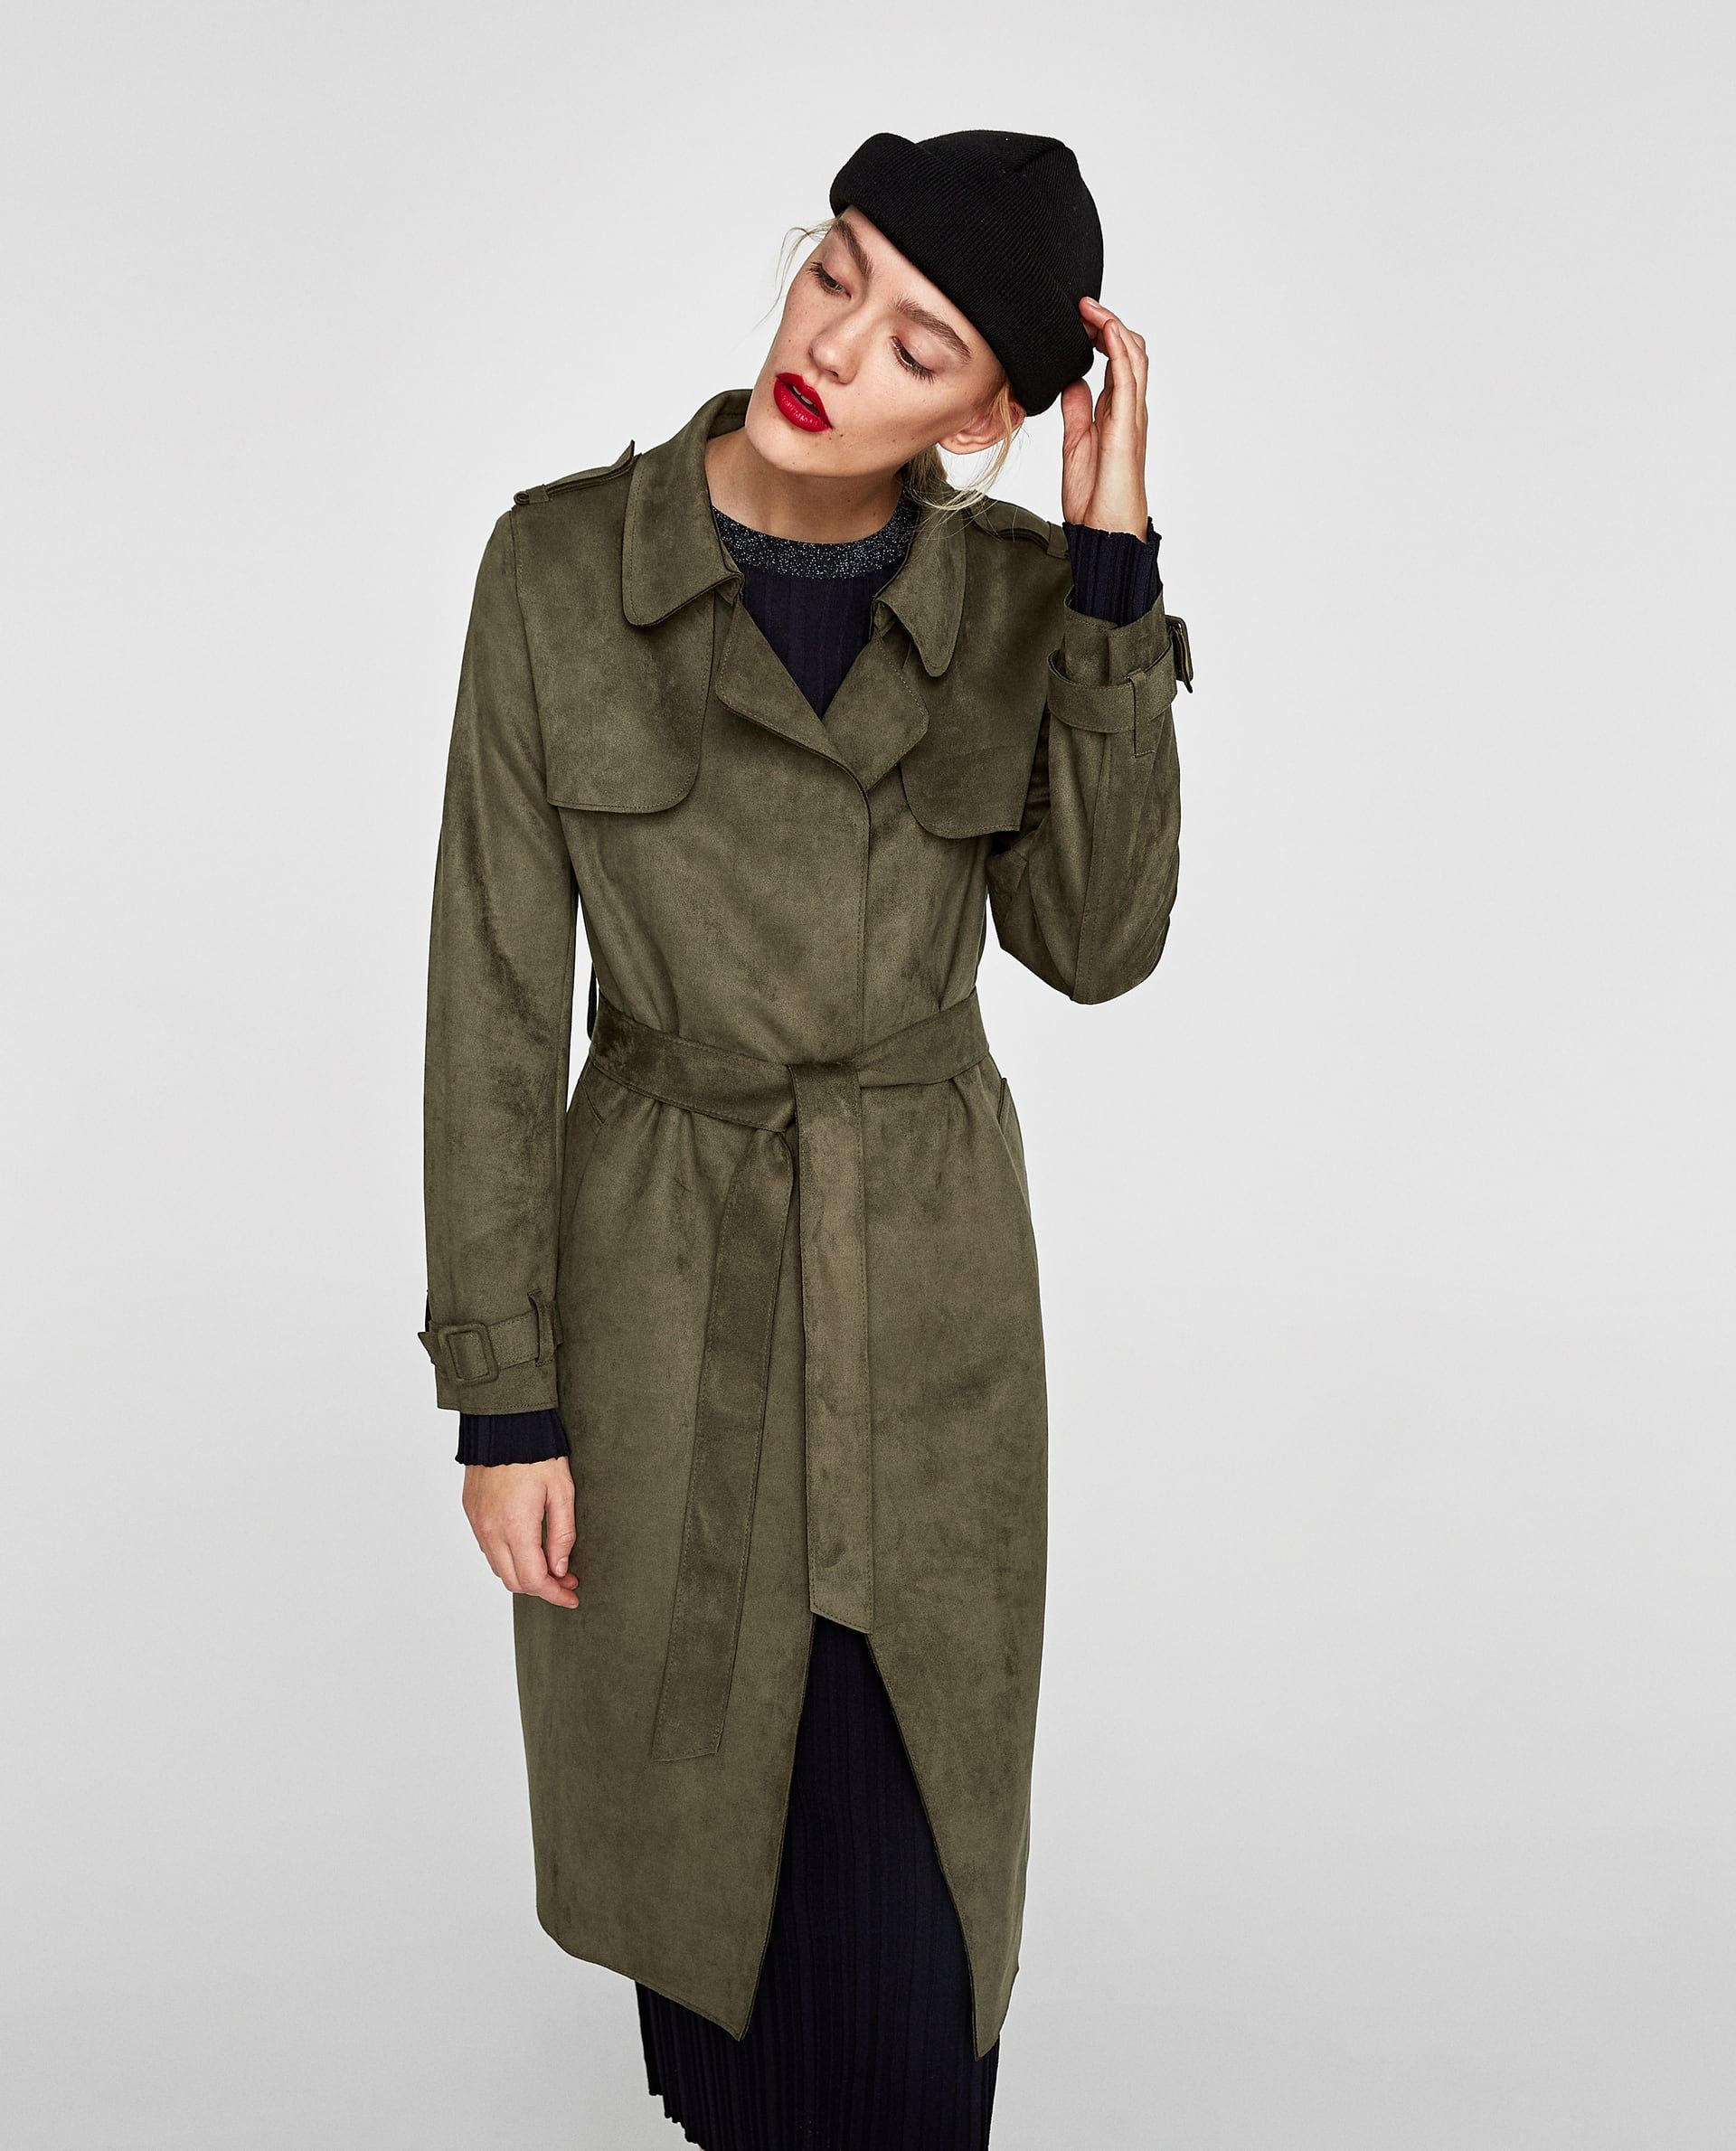 155ecdf9 Image 2 of FAUX SUEDE TRENCH COAT from Zara | WEAR | Suede trench ...